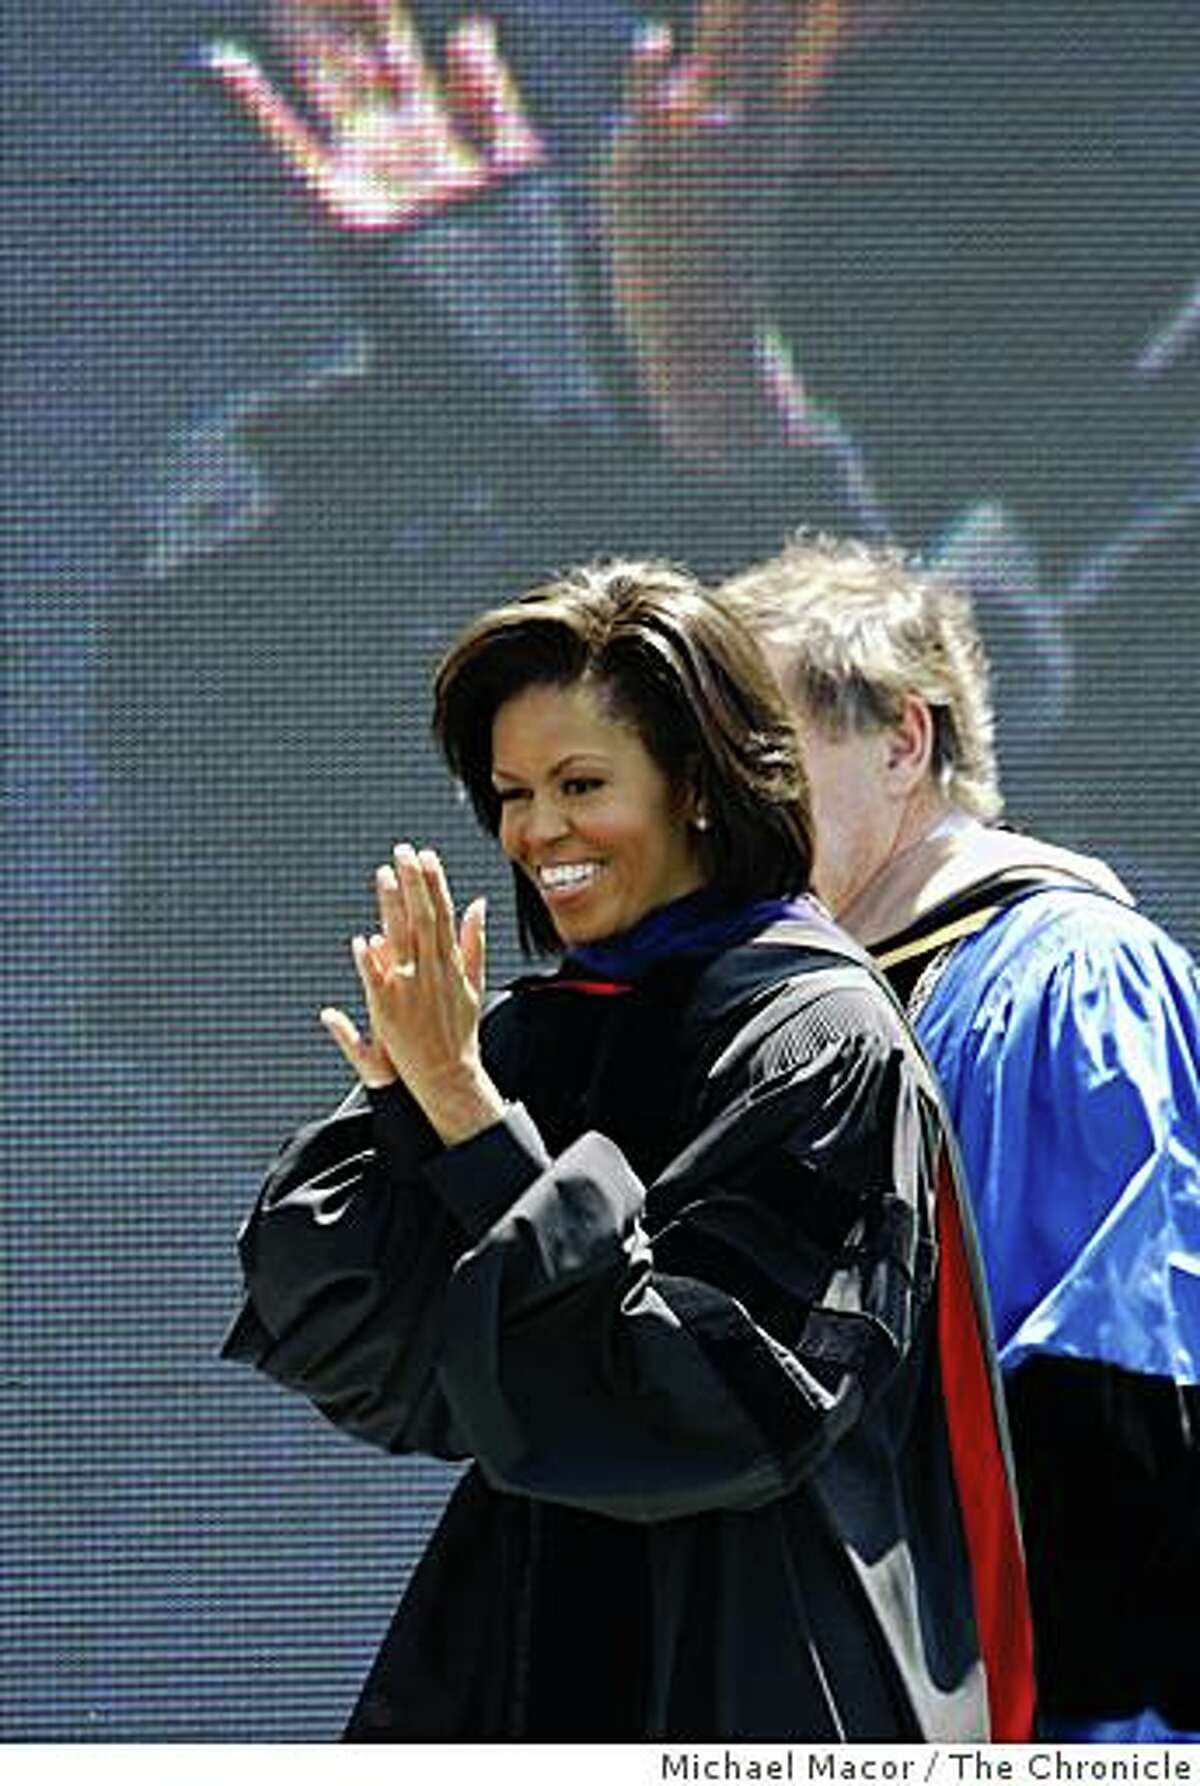 First Lady Michelle Obama, claps to the graduatuing upon entering the stage, moments before she delivers the commencement speech to the first full graduating class of UC Merced on Saturday, May 16, 2009 in Merced, Calif.